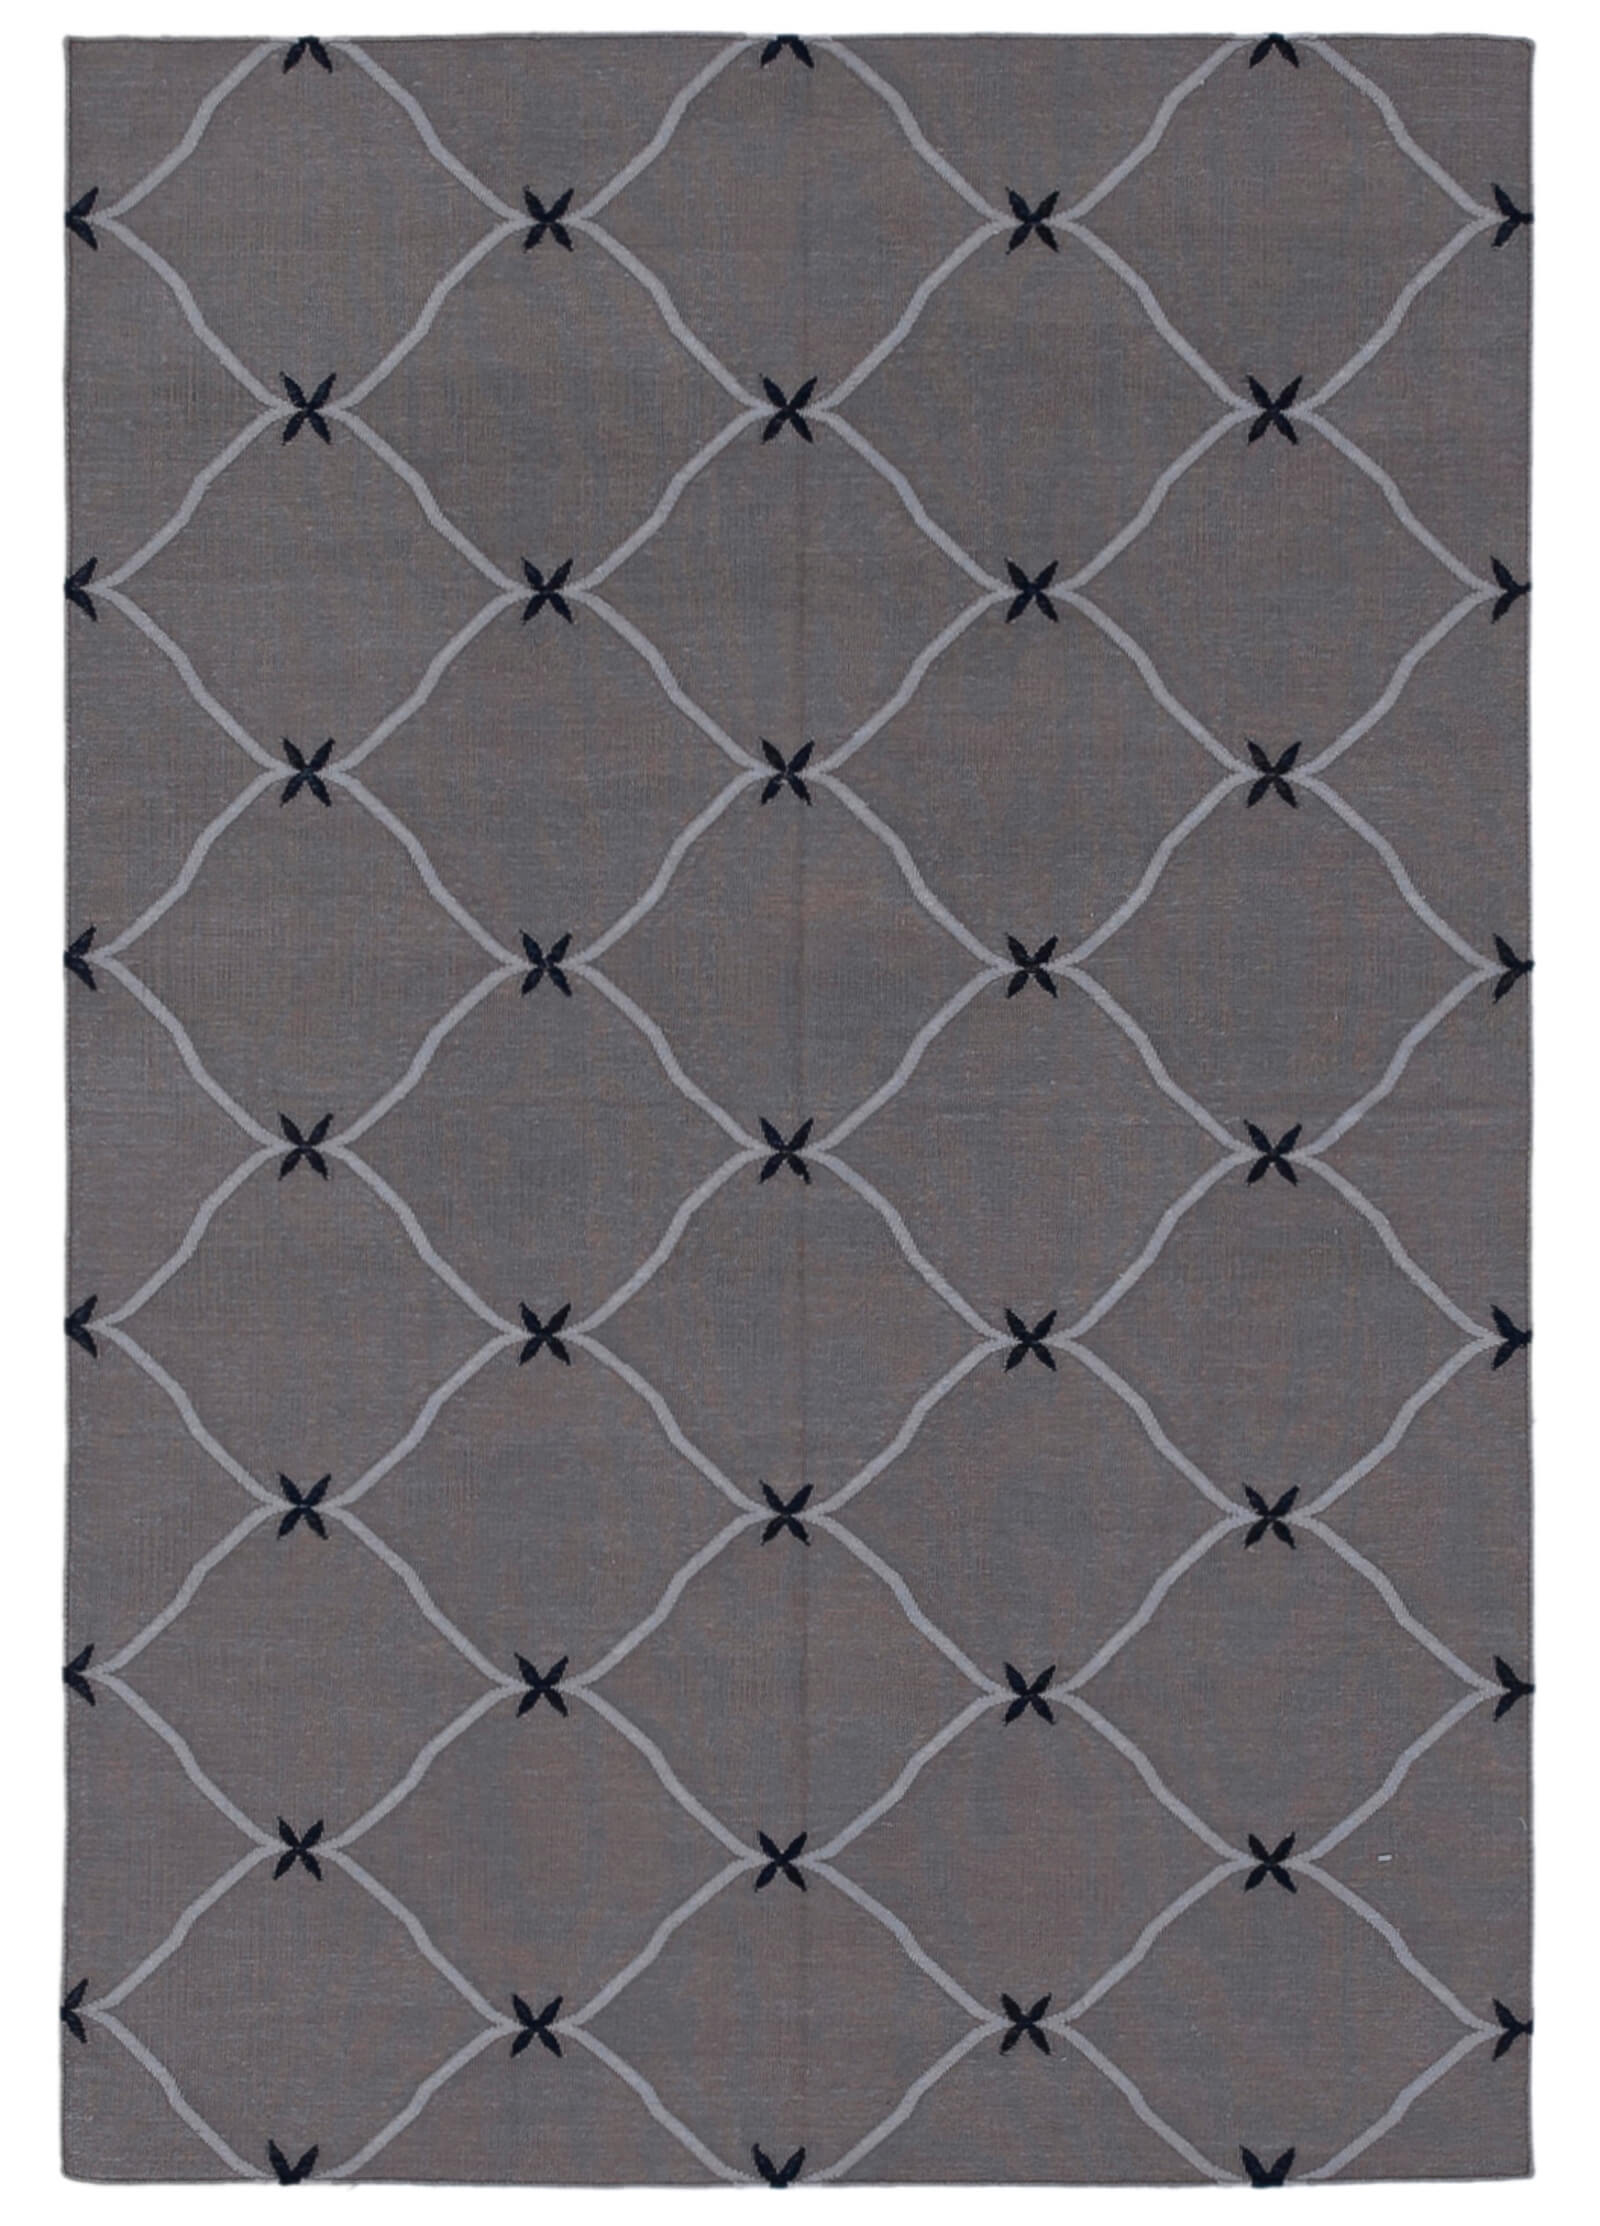 Handmade High Quality Kilim Dhurrie Multicolor Rug Design 32570 Size 3 7 X 5 4 Online Only